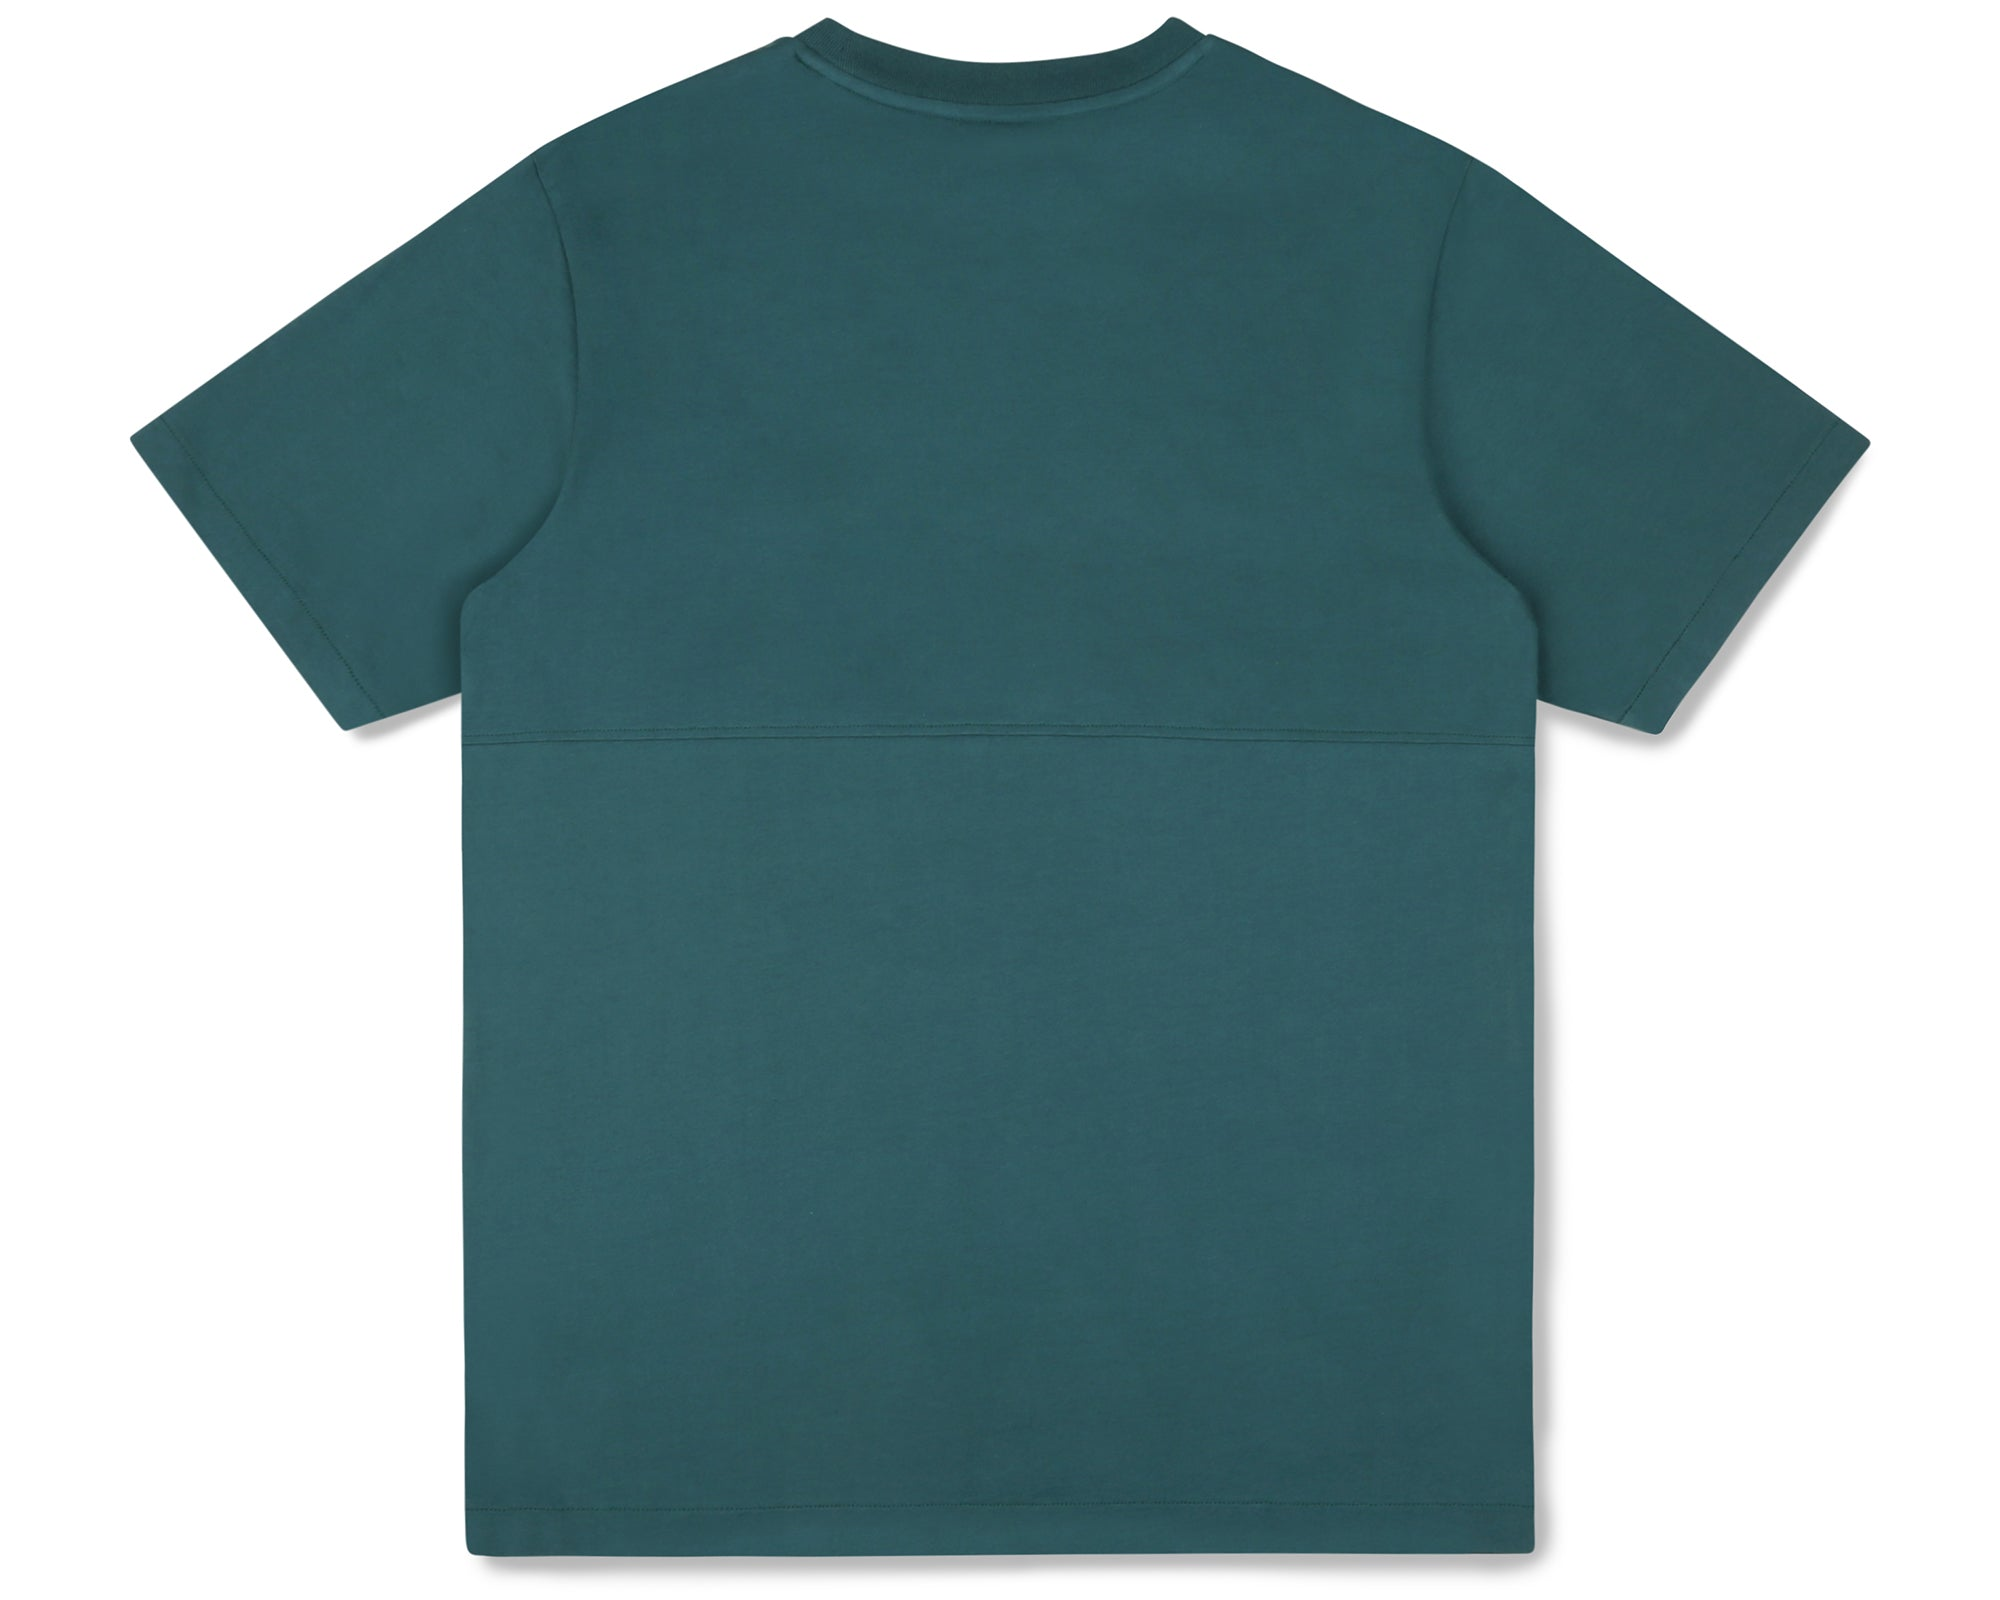 ROBOTIC LOGO S/S T-SHIRT - GREEN